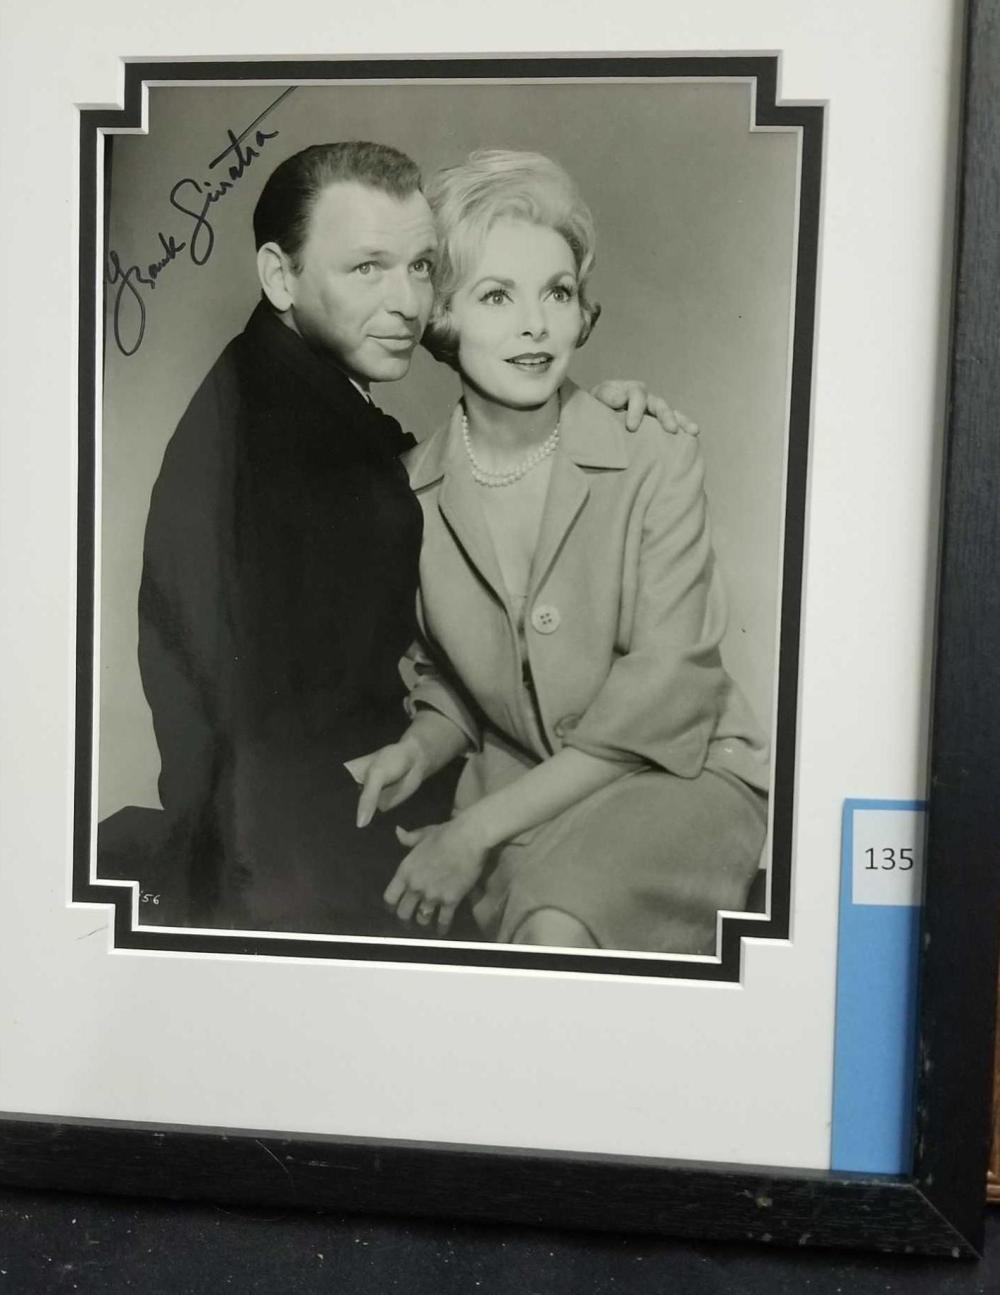 FRANK SINATRA W/ JANET LEIGH BLACK & WHITE PUBLICITY SIGNED PHOTO